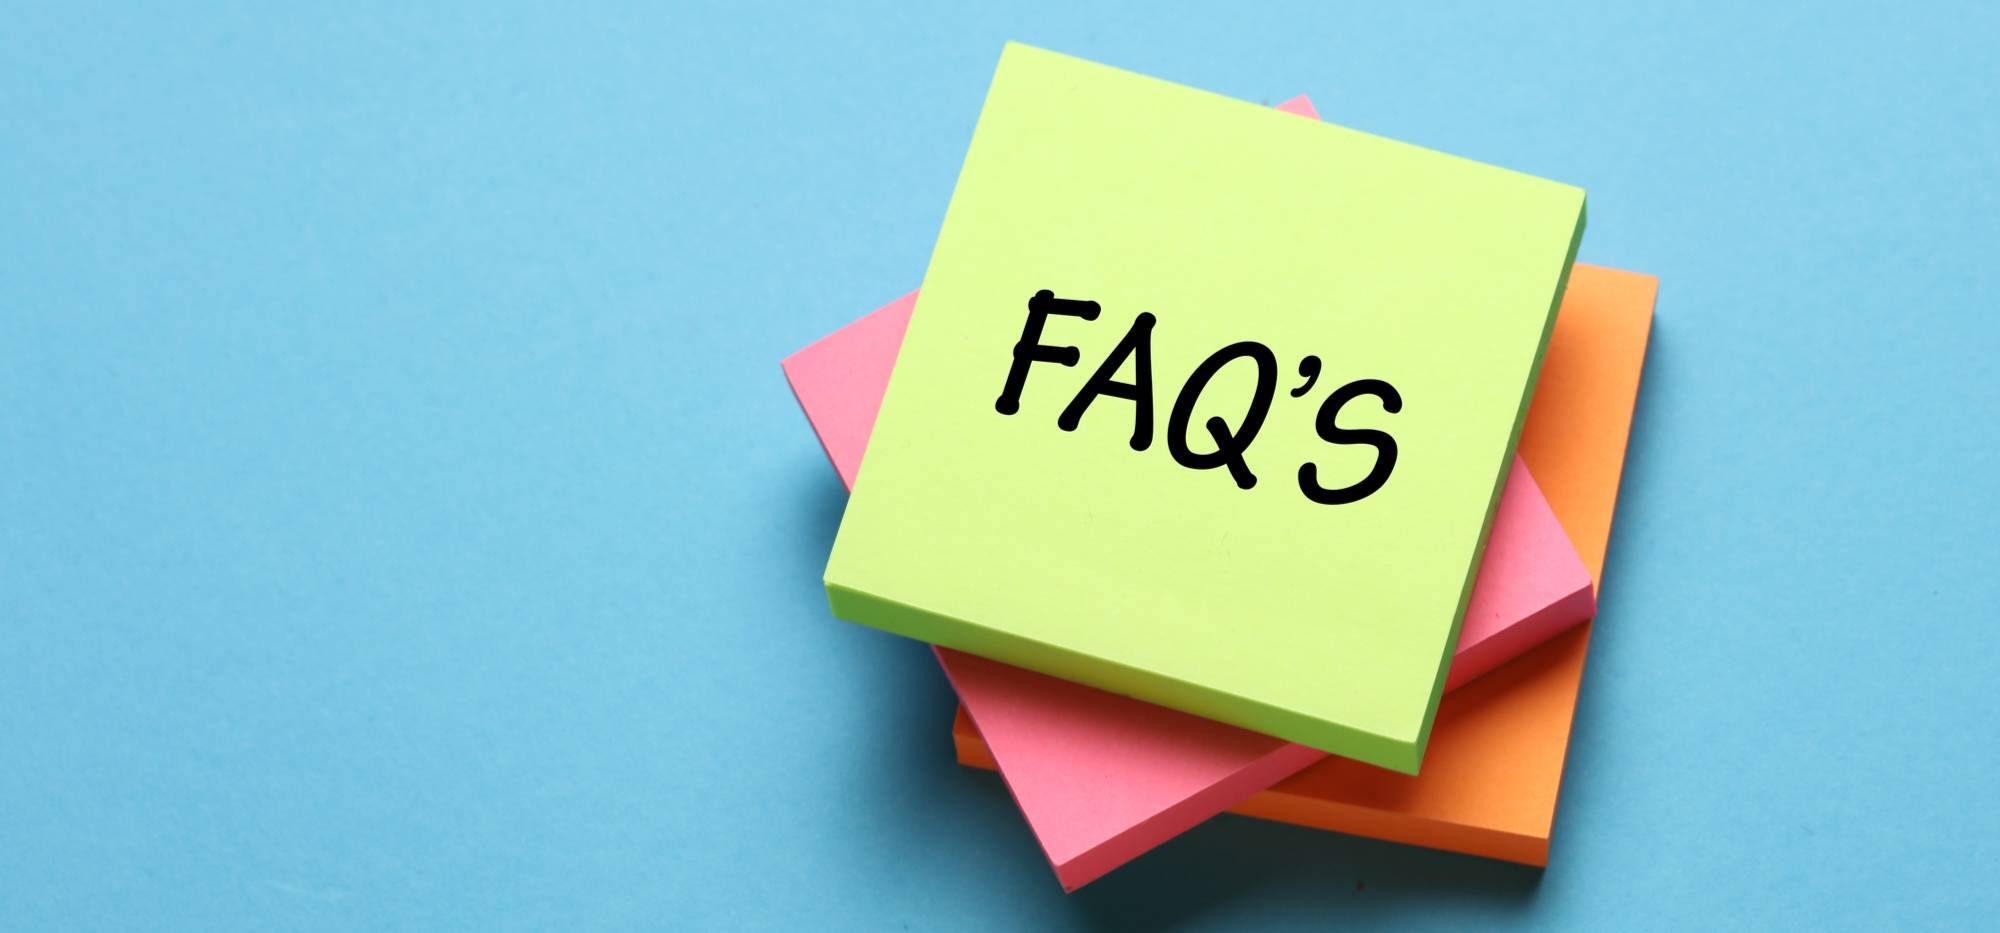 Website FAQ's - Frequently Asked Questions